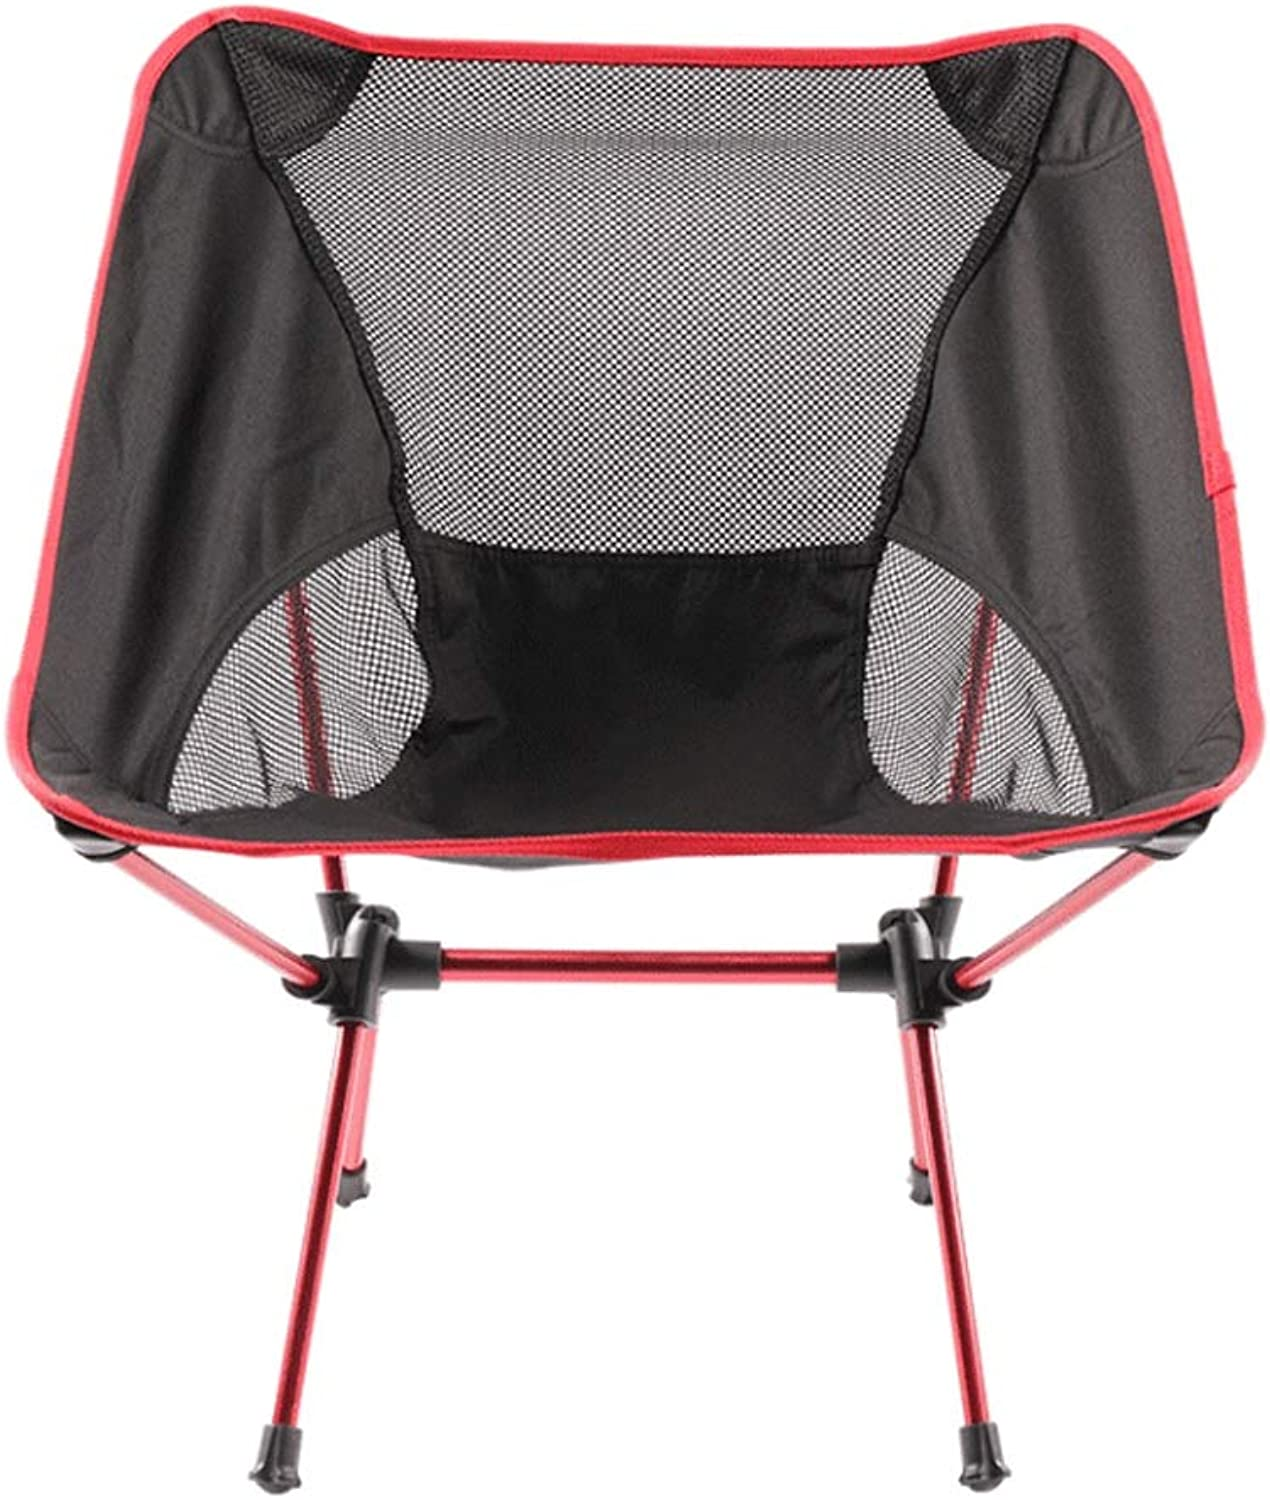 Nevy Camping Chair Lightweight Breathable Folding Compact Portable Moon Chair Festival Beach Fishing Seat,Red